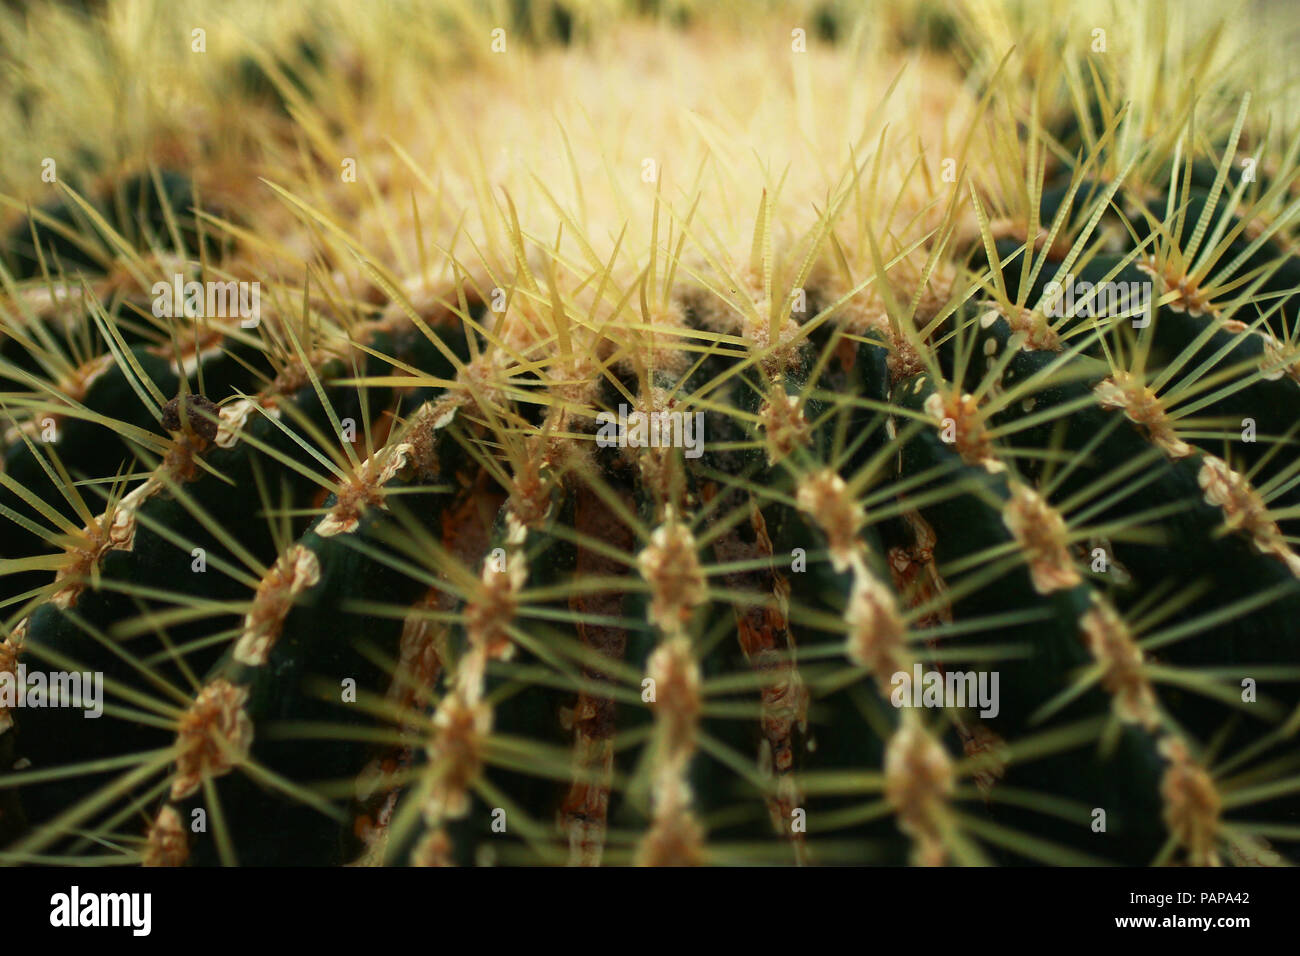 Cactus Spines close up. Stock Photo